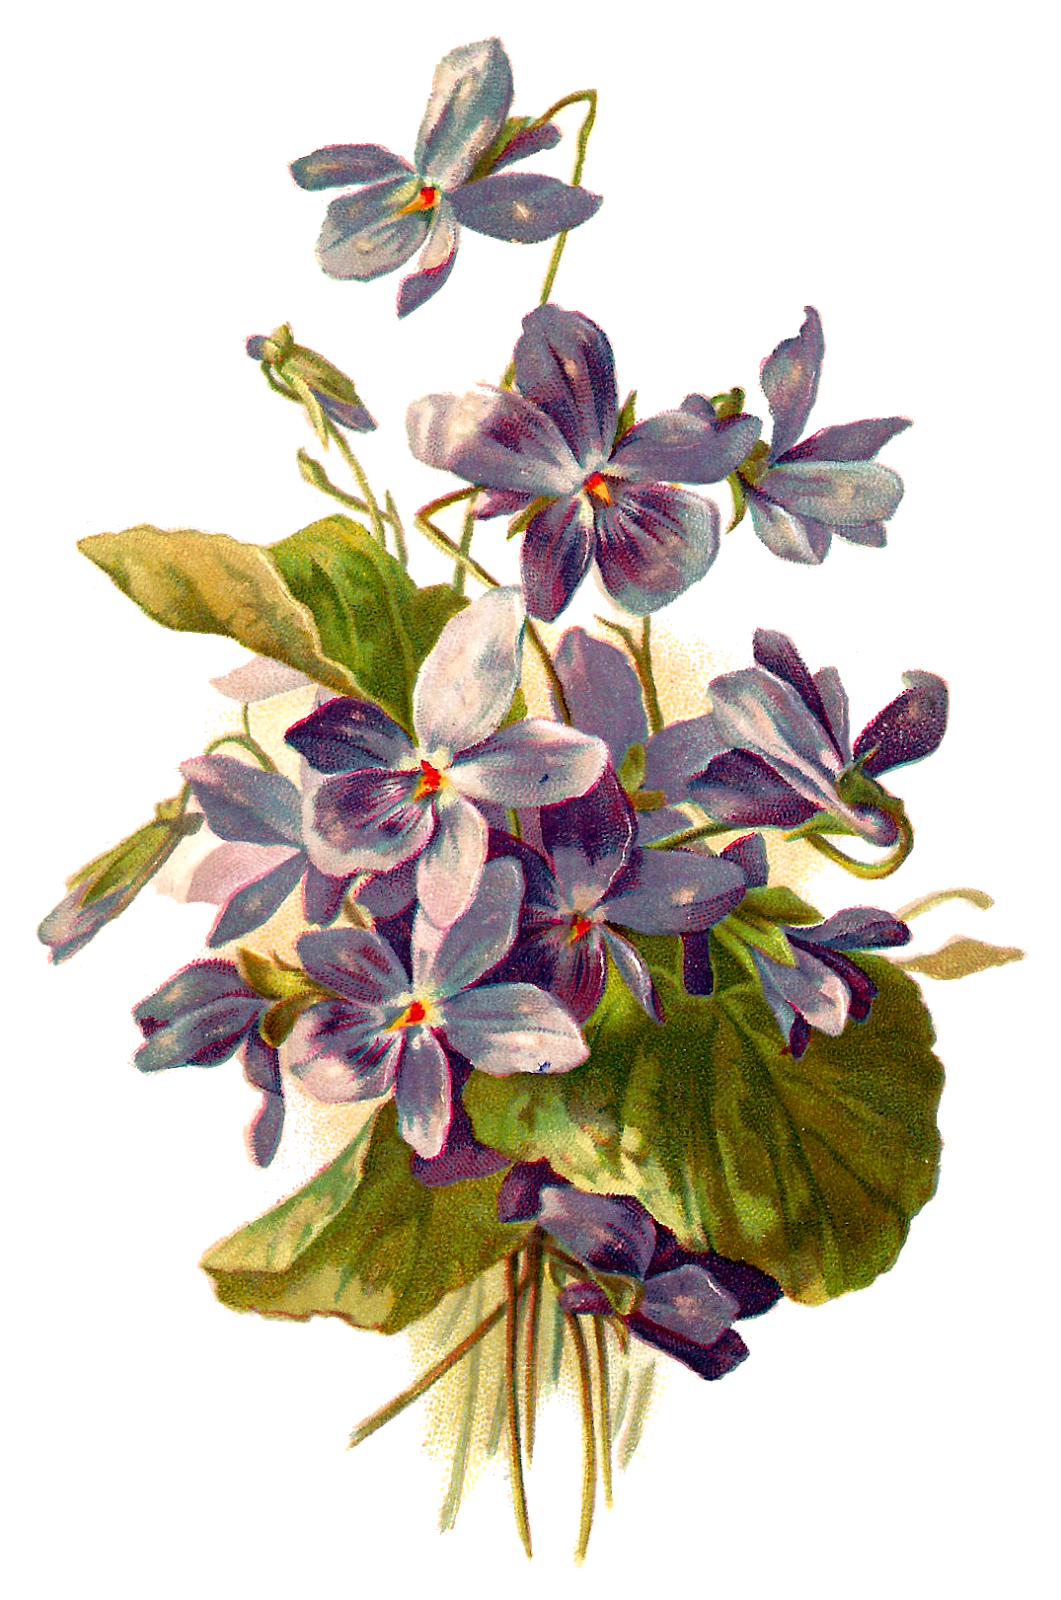 Flower illustration png. Forget me not flowers